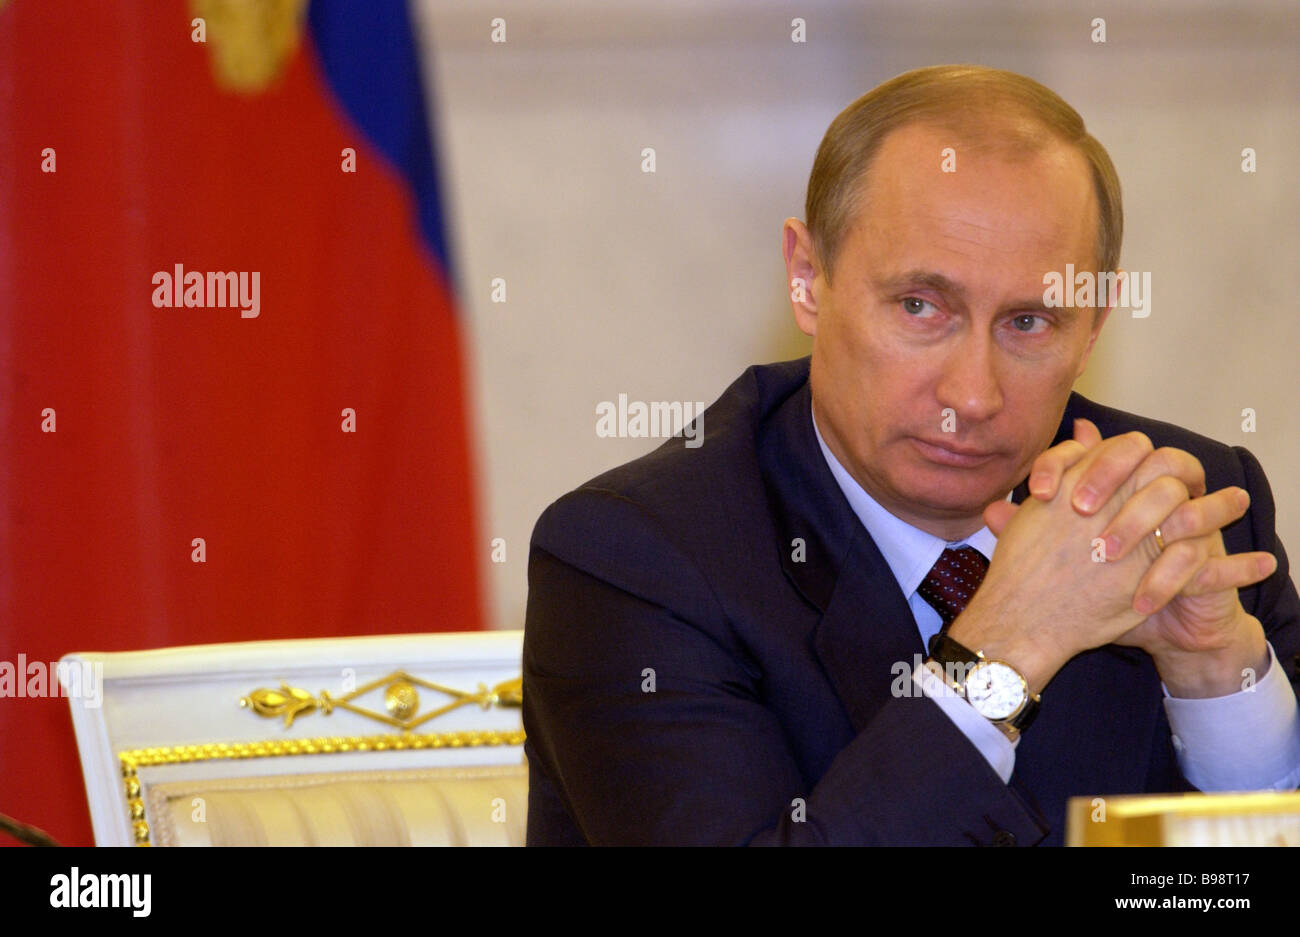 Russian President Vladimir Putin at a conference of the Council of Lawmakers in the Grand Kremlin Palace - Stock Image